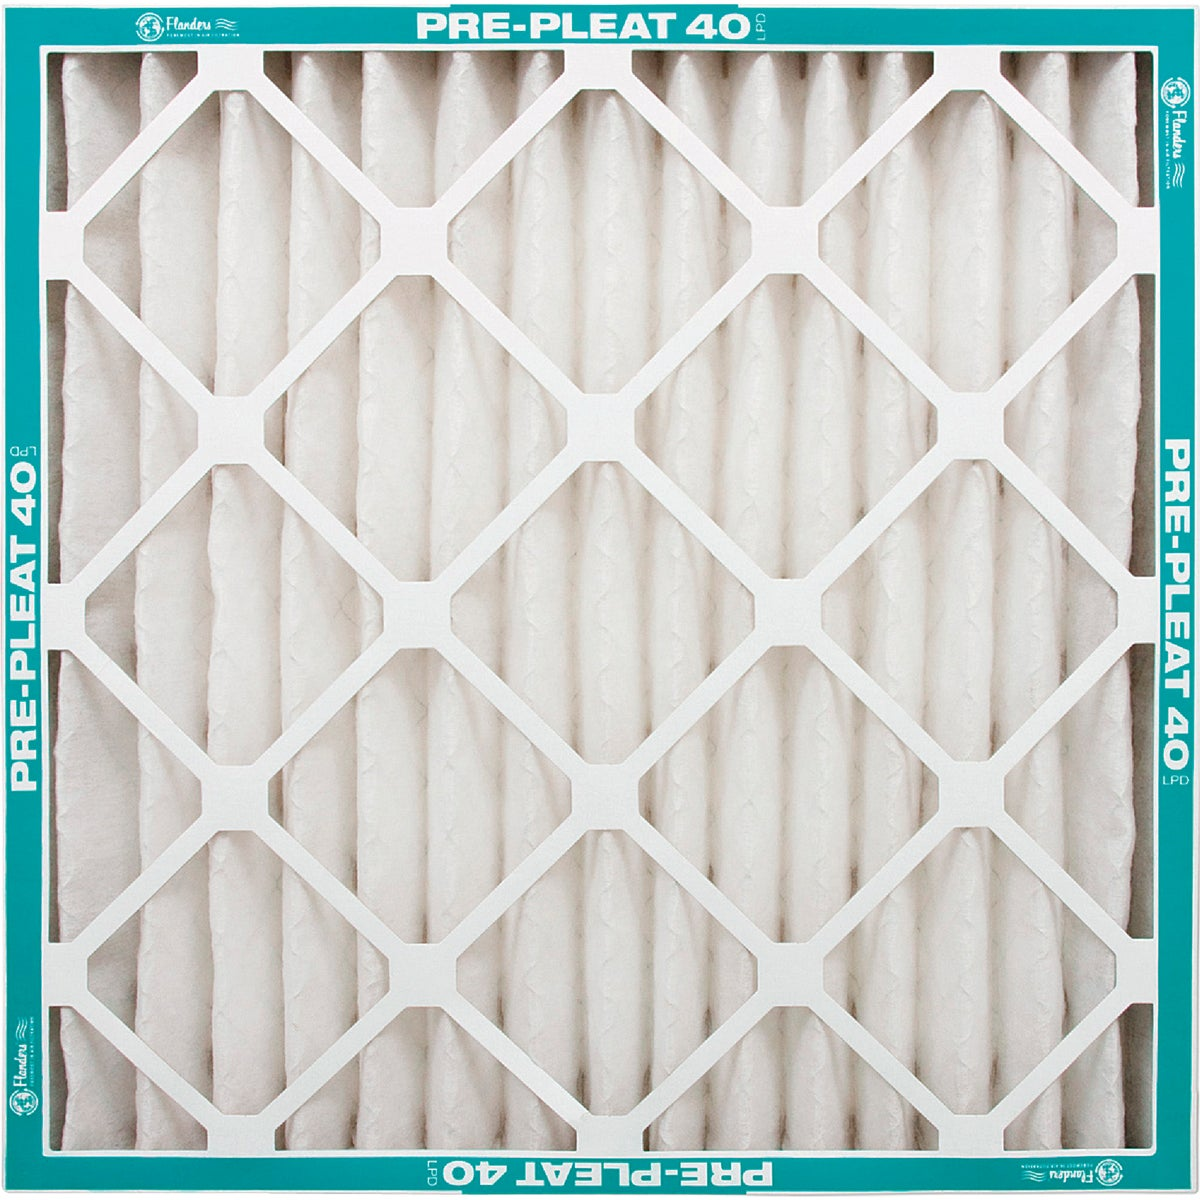 16X20X4 PLTD AIR FILTER - 80055.041620 by Flanders Corp